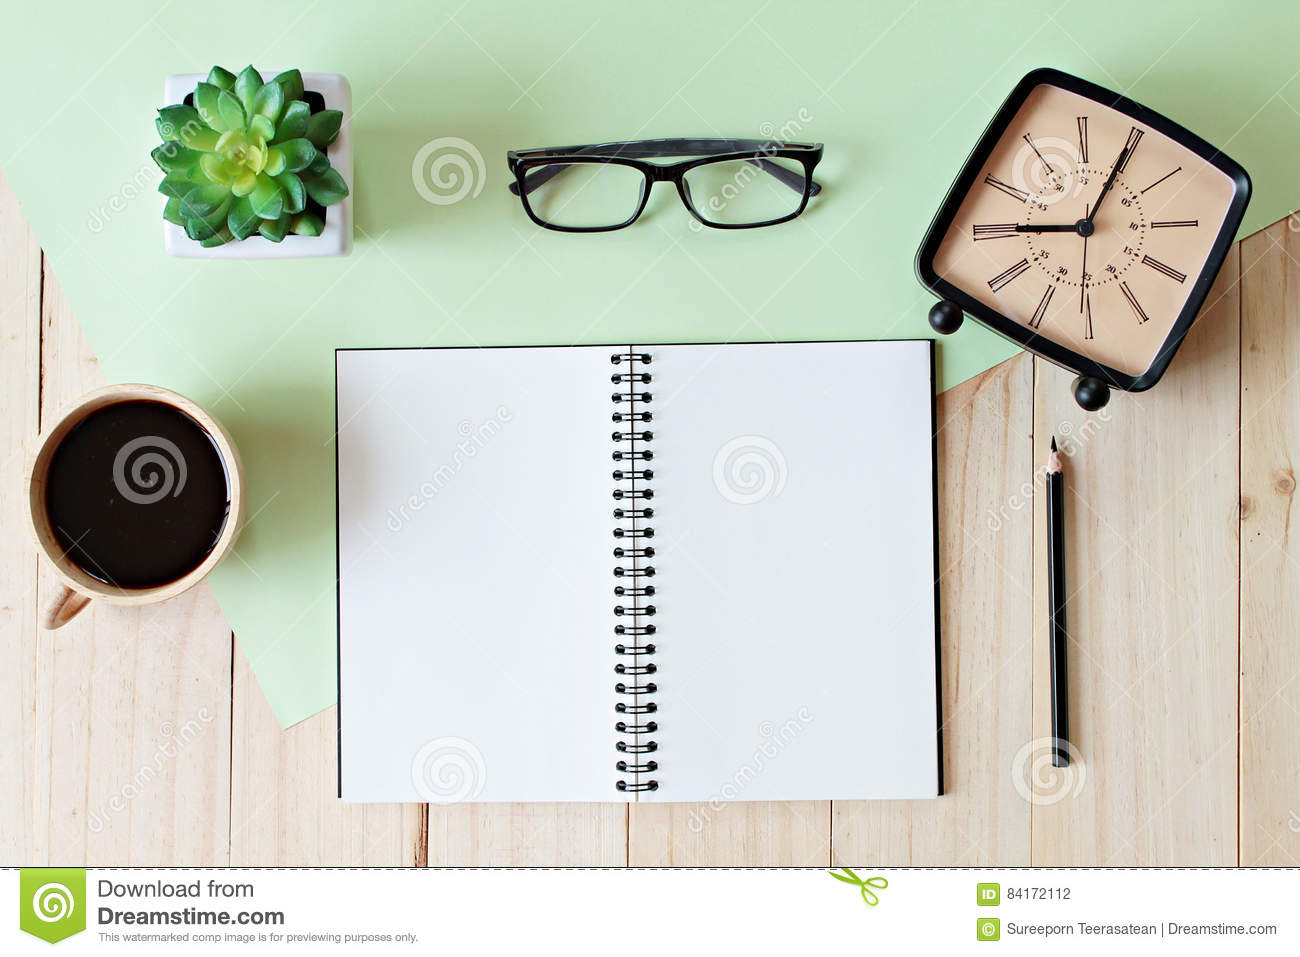 Top View Of Working Desk With Blank Notebook With Pencil, Coffee Cup, Eyeglasses, Retro Alarm ...